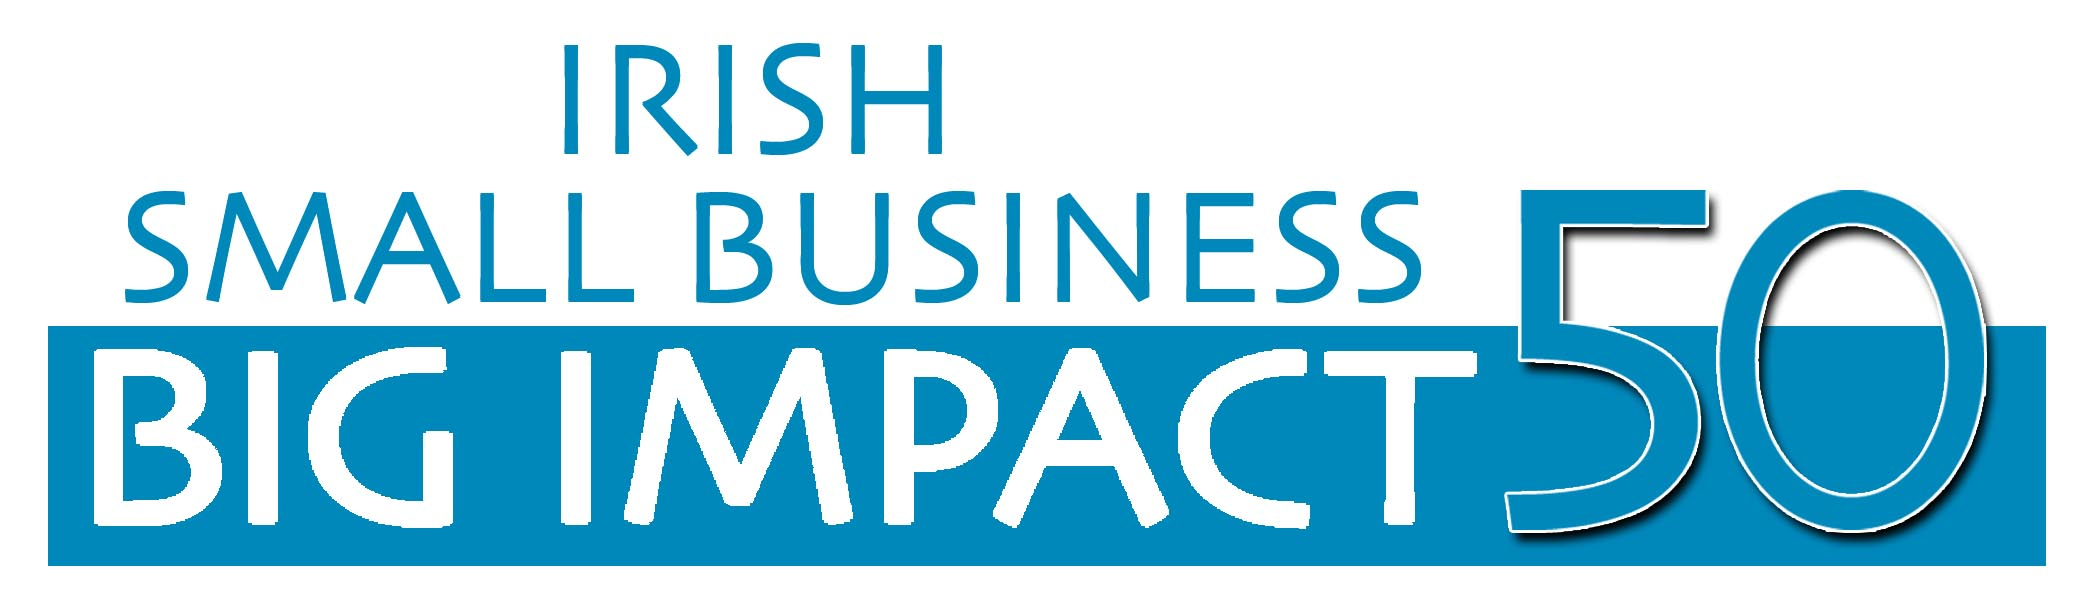 Irish Small Business Big Impact 50 logo